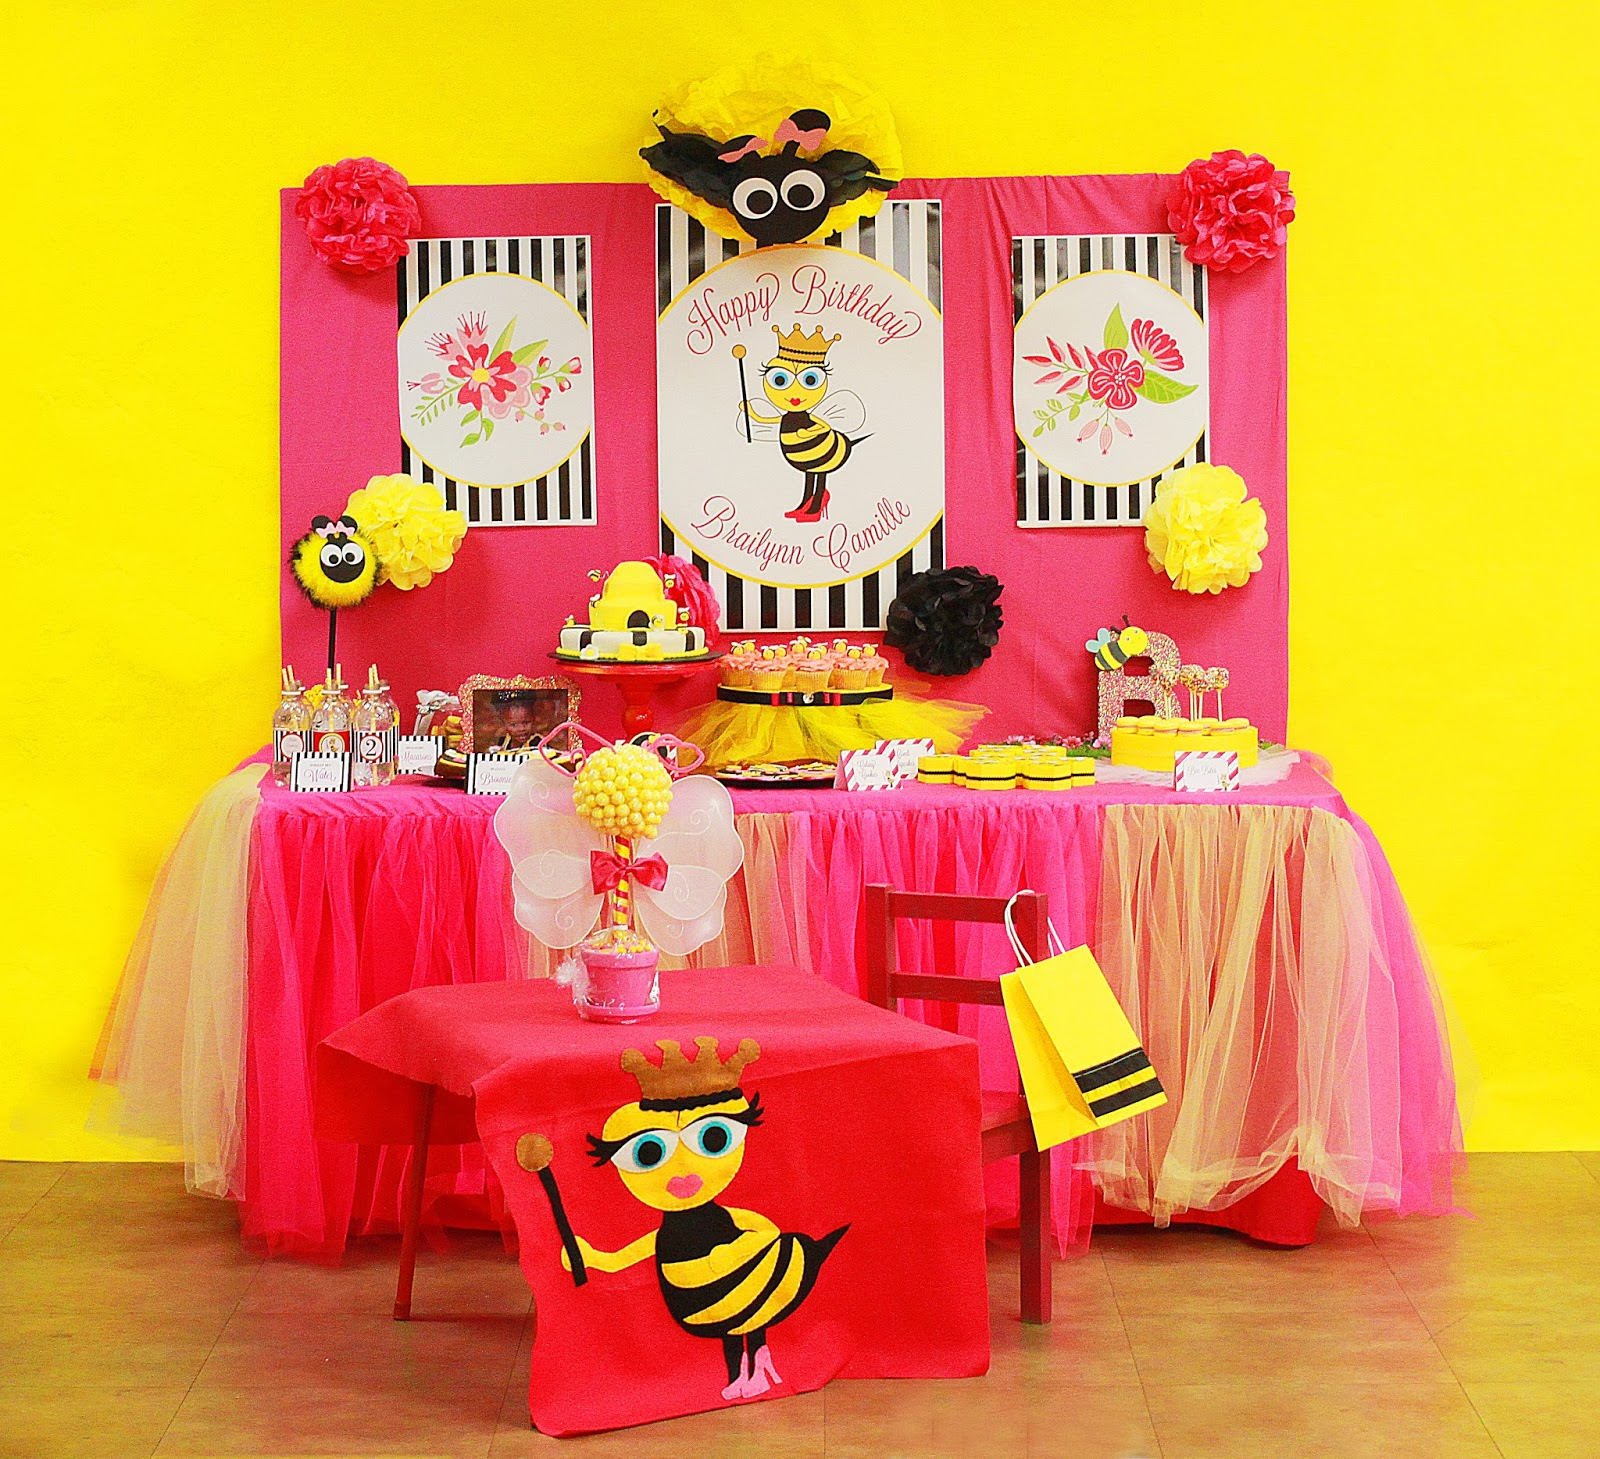 Felt Bee Table Drop For Birthday Girls 55 Tissue Pom And Addtional Poms 40 Edible Centerpiece On Childs 65